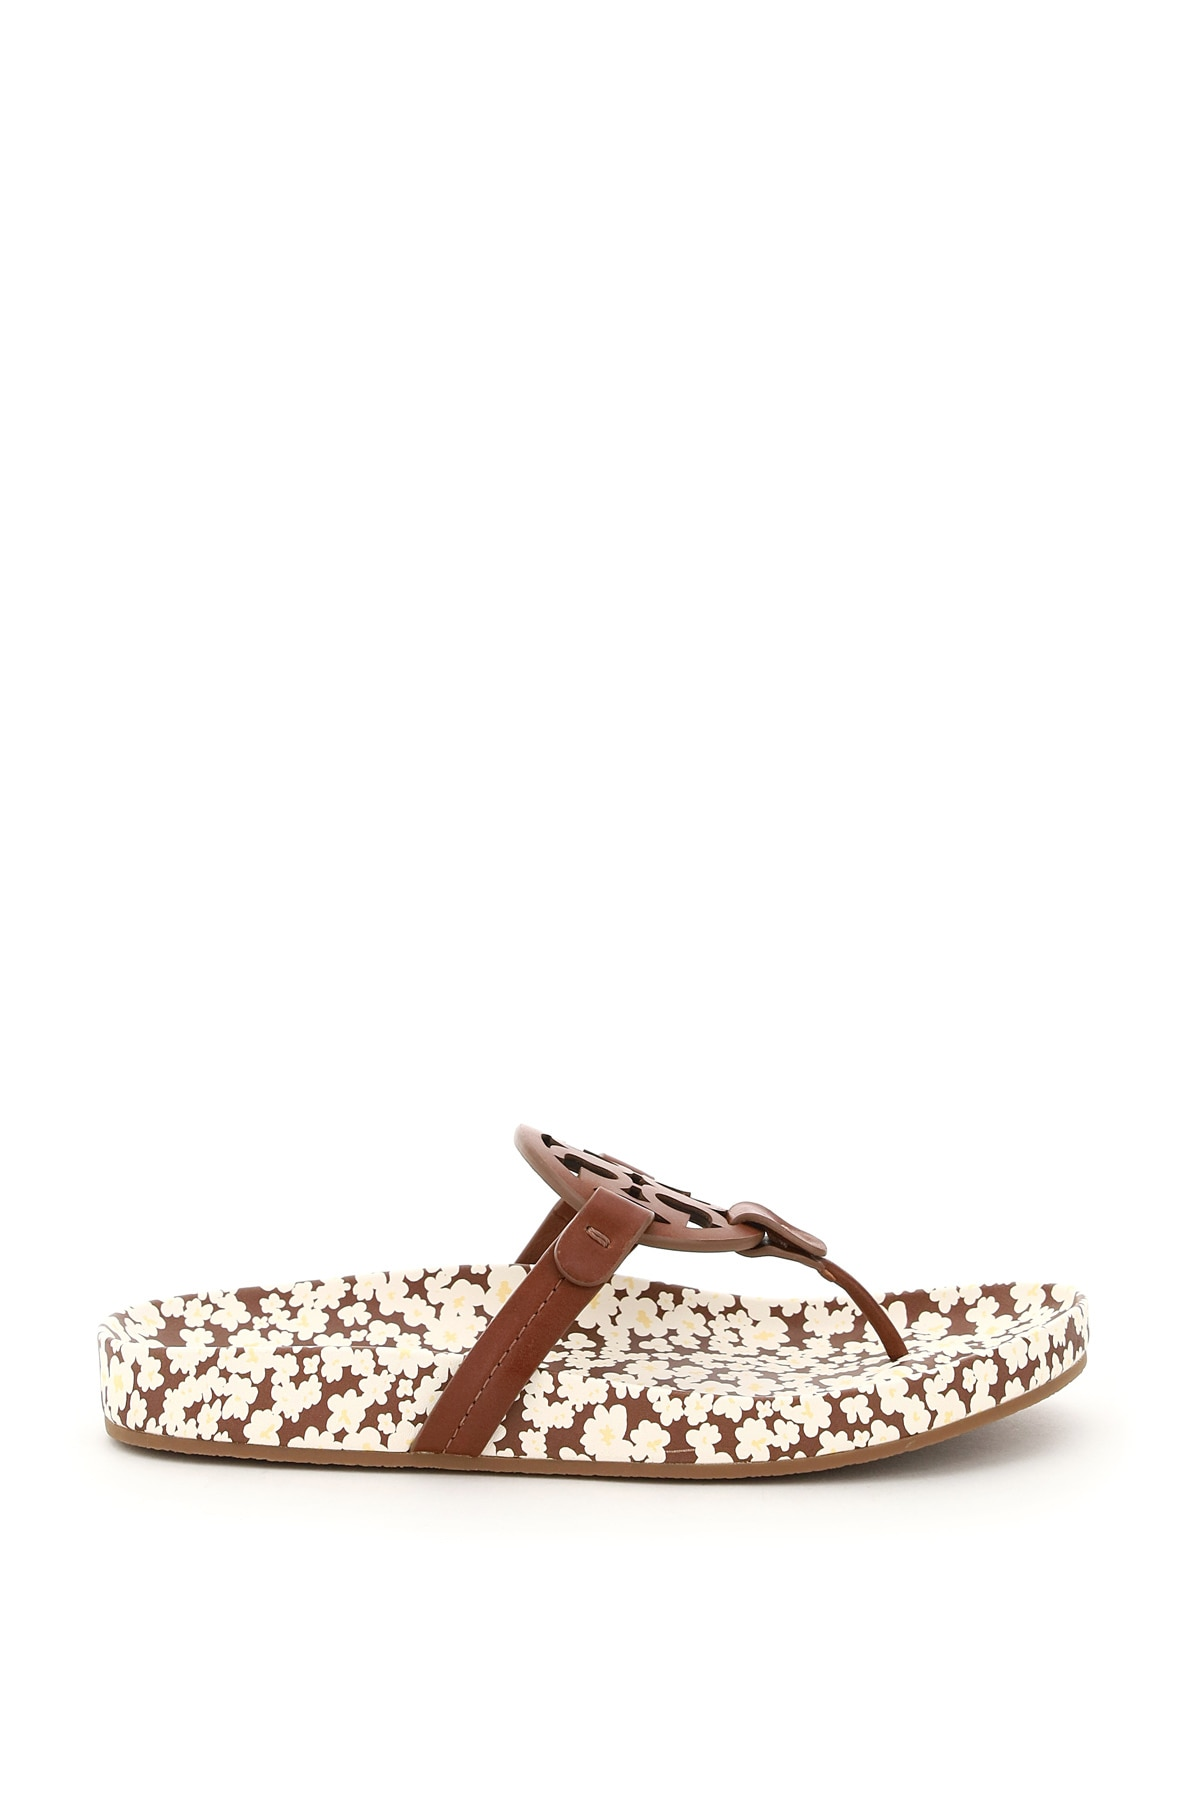 TORY BURCH MILLER CLOUD LEATHER MULES 7 Brown, White Leather